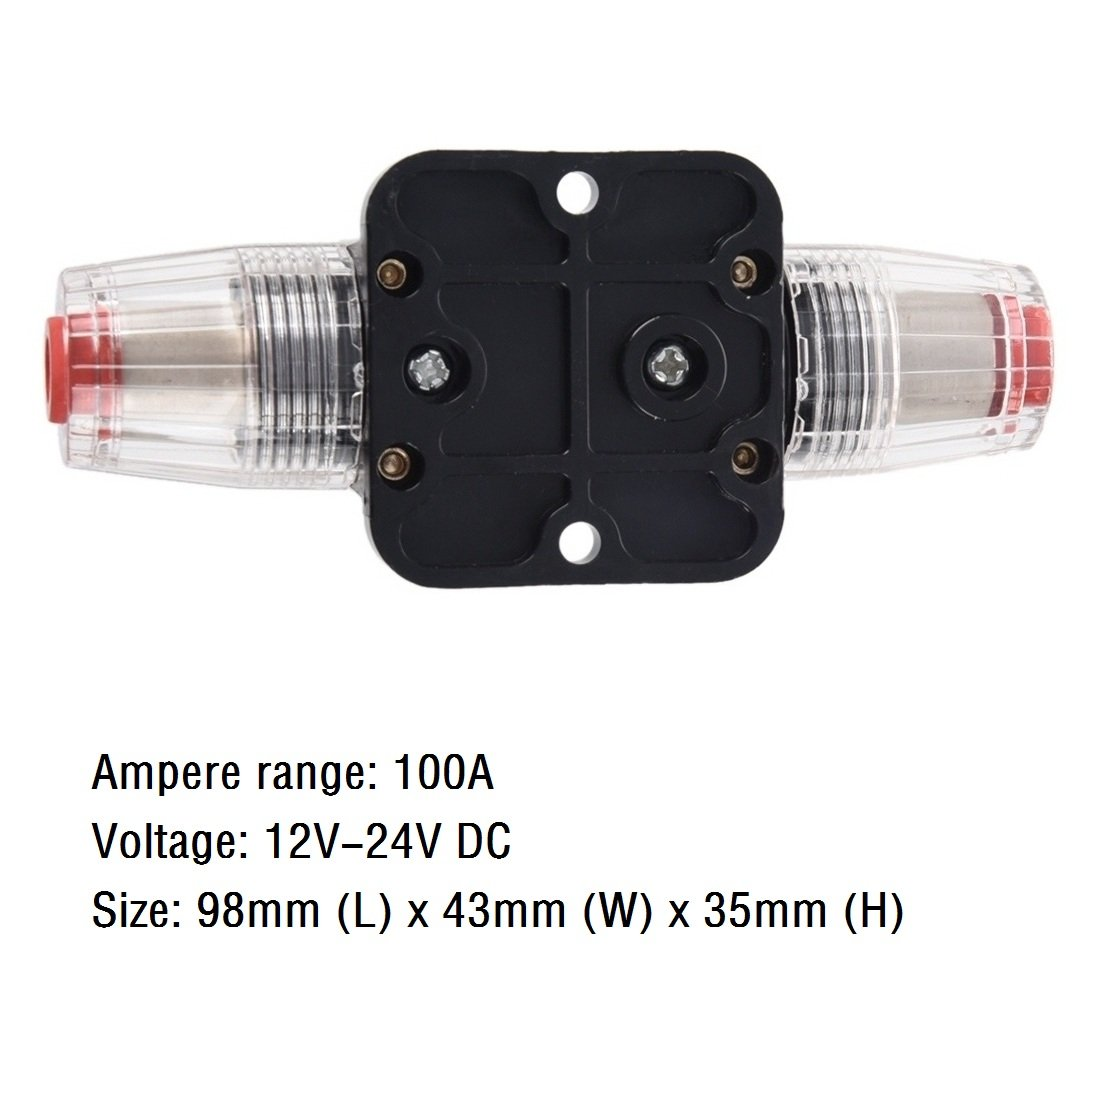 anjoshi 100a inline fuse holder car audio protection auto circuit rh gestion accueil assistance be